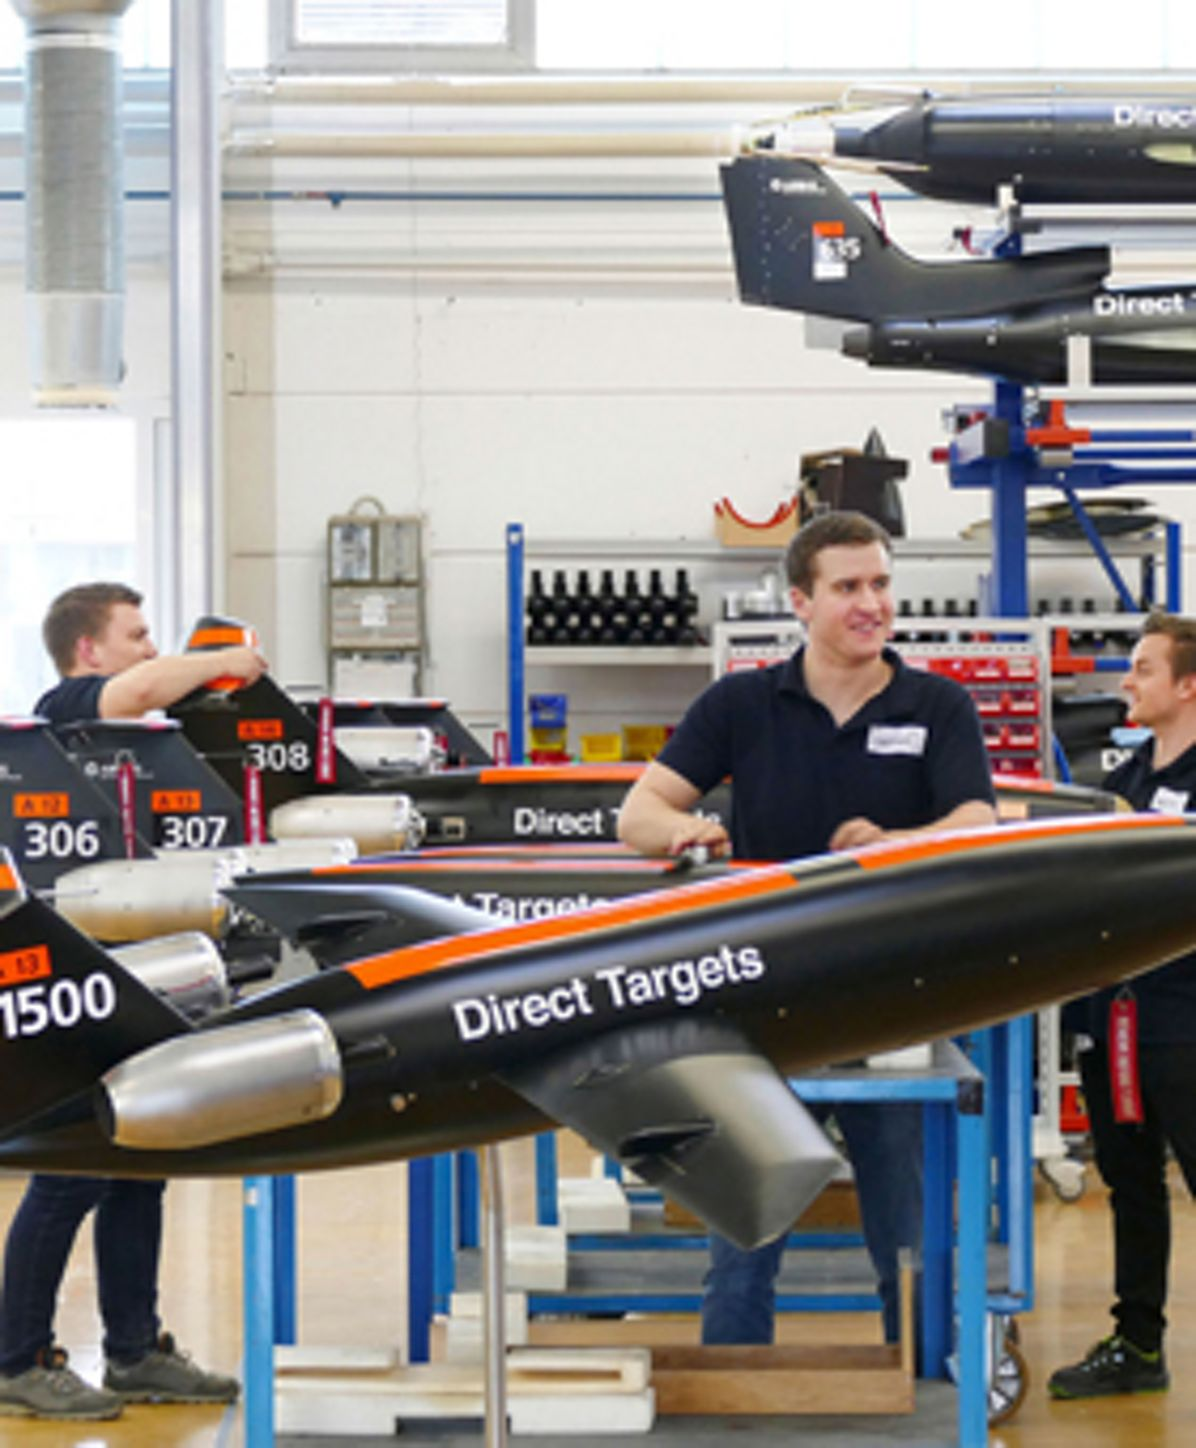 Target Drones Manufactoring, Target drone (Do-DT – direct target) production  at the Friedrichshafen site